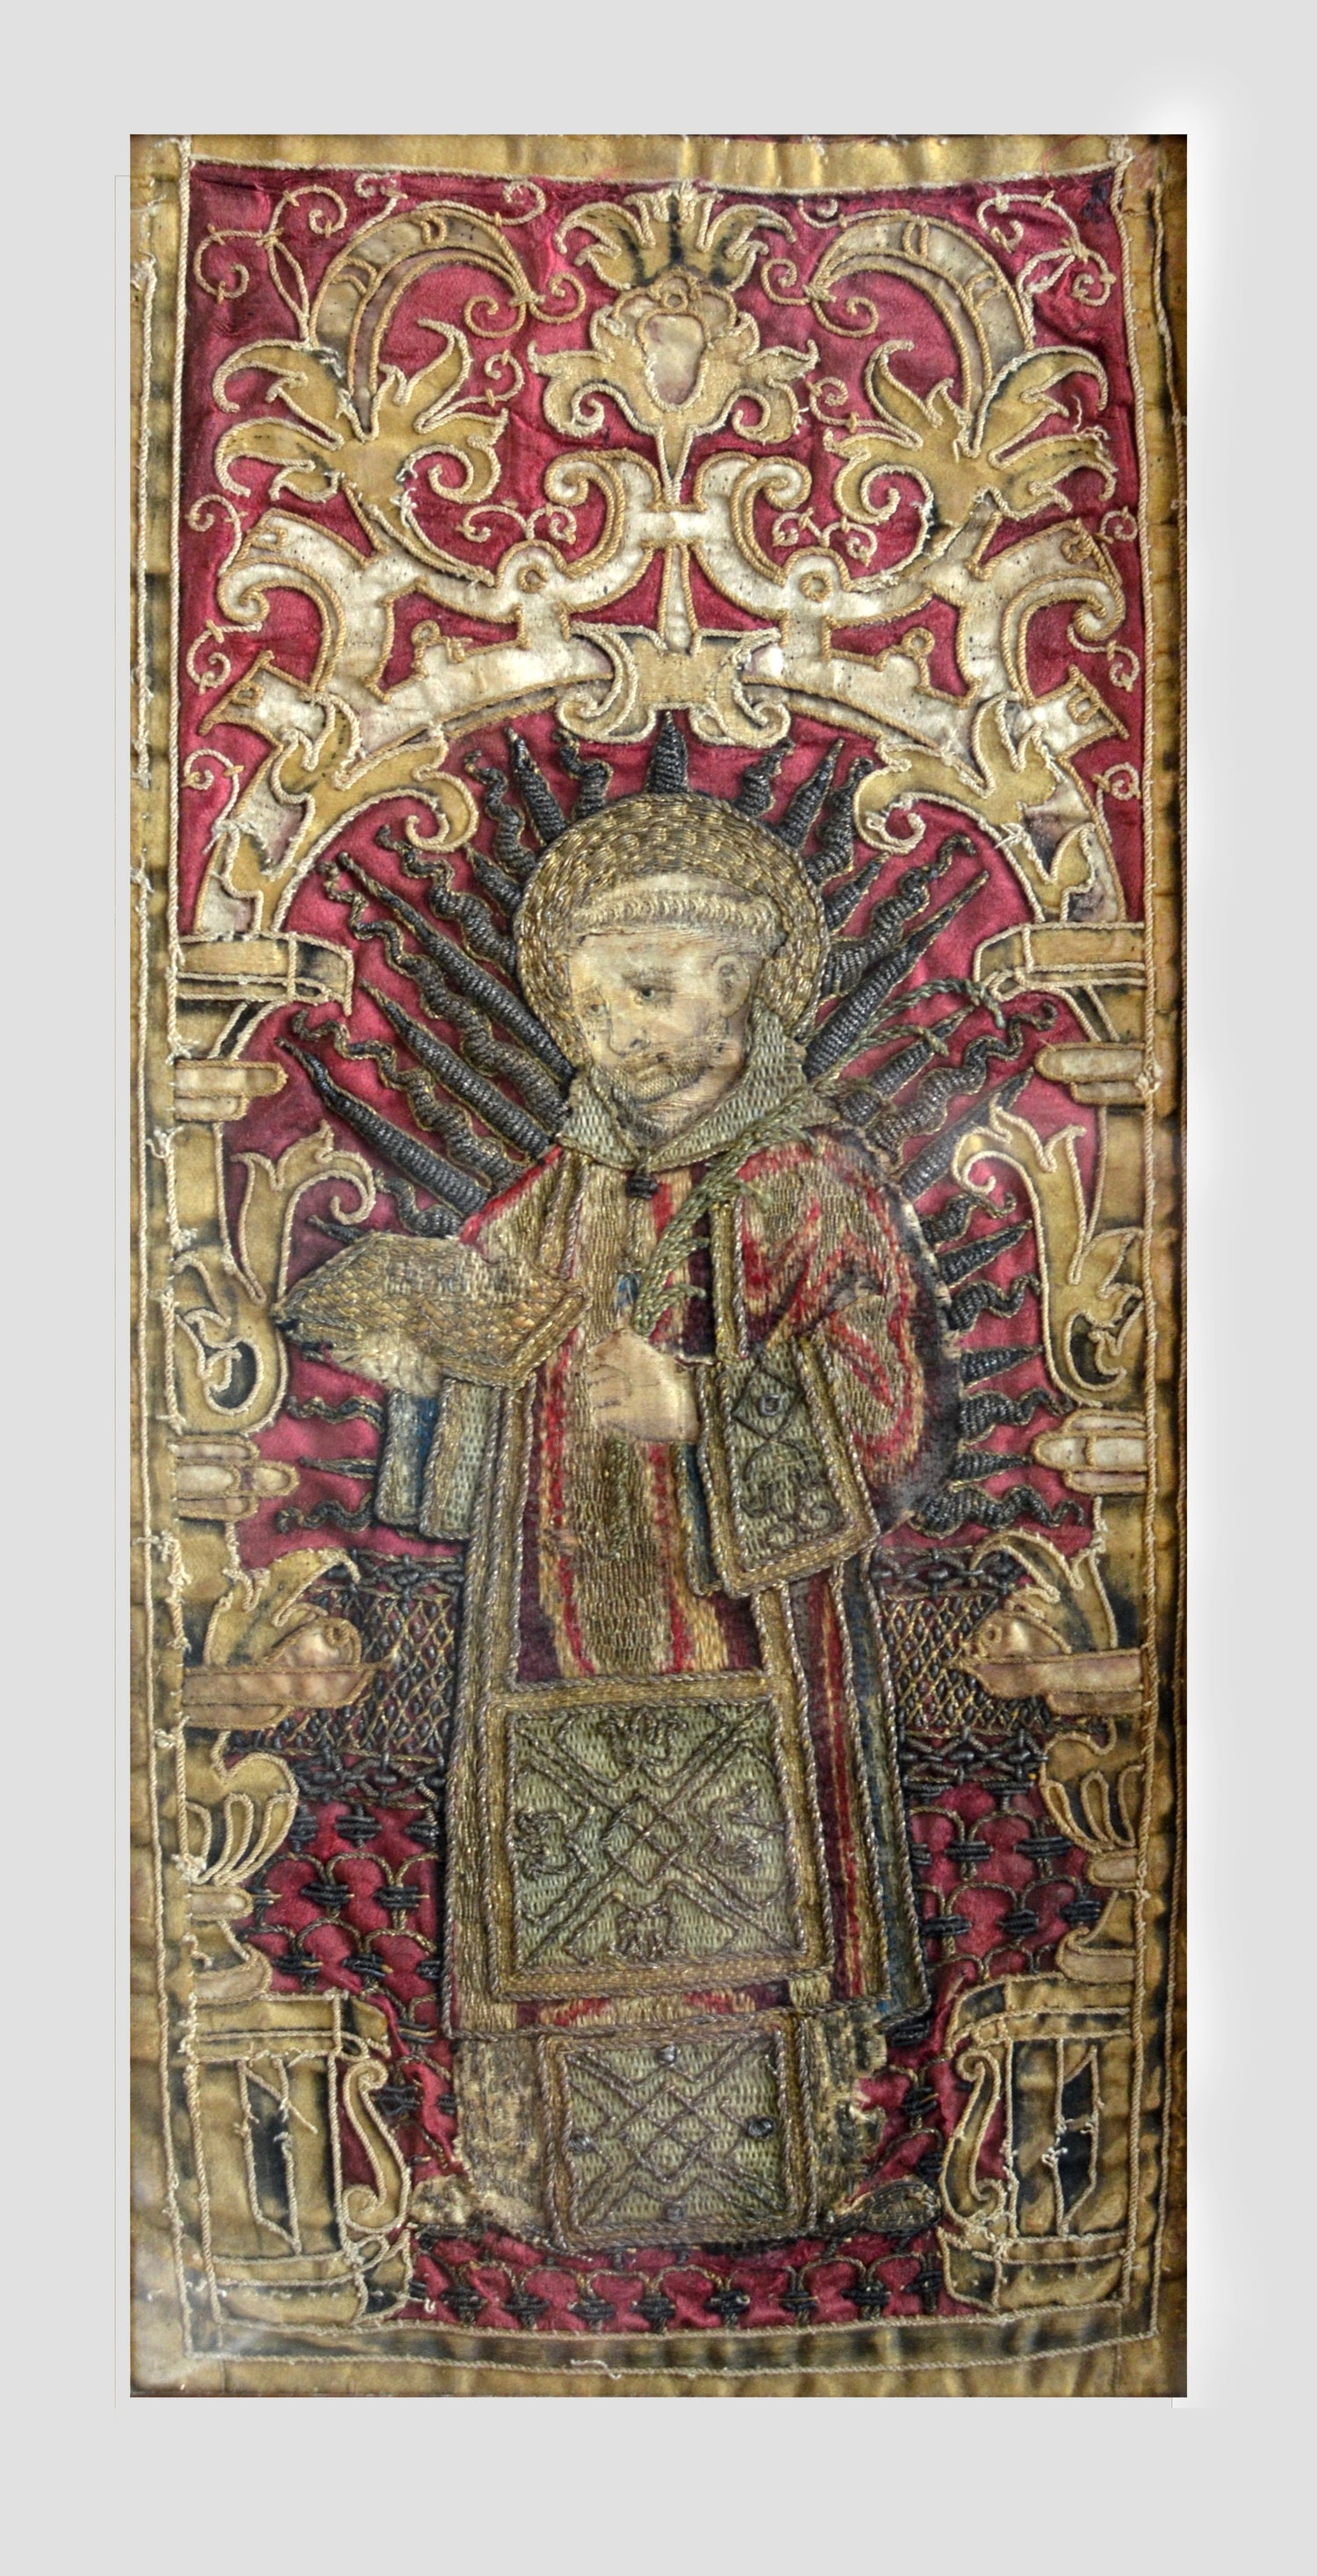 Image of Museum Quality 16th-17th cent. Velvet, Silk and Gilt Thread Embroidered Panel